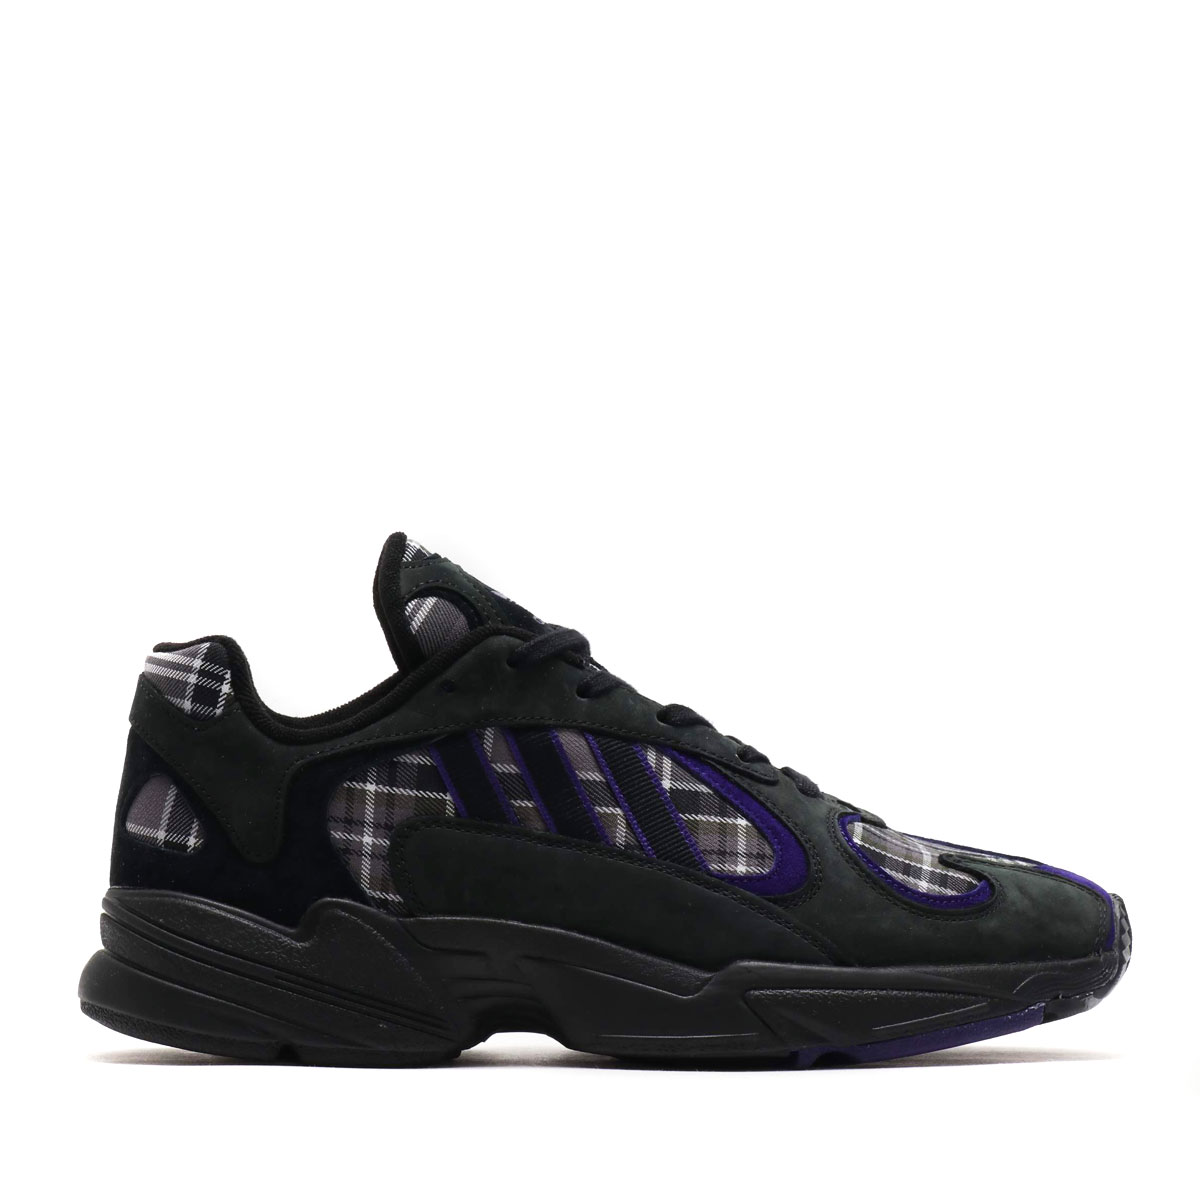 adidas Blackcollege 1 Originals Purplecore Young 1 Yung People Black core Adidas IPpx0qwCP